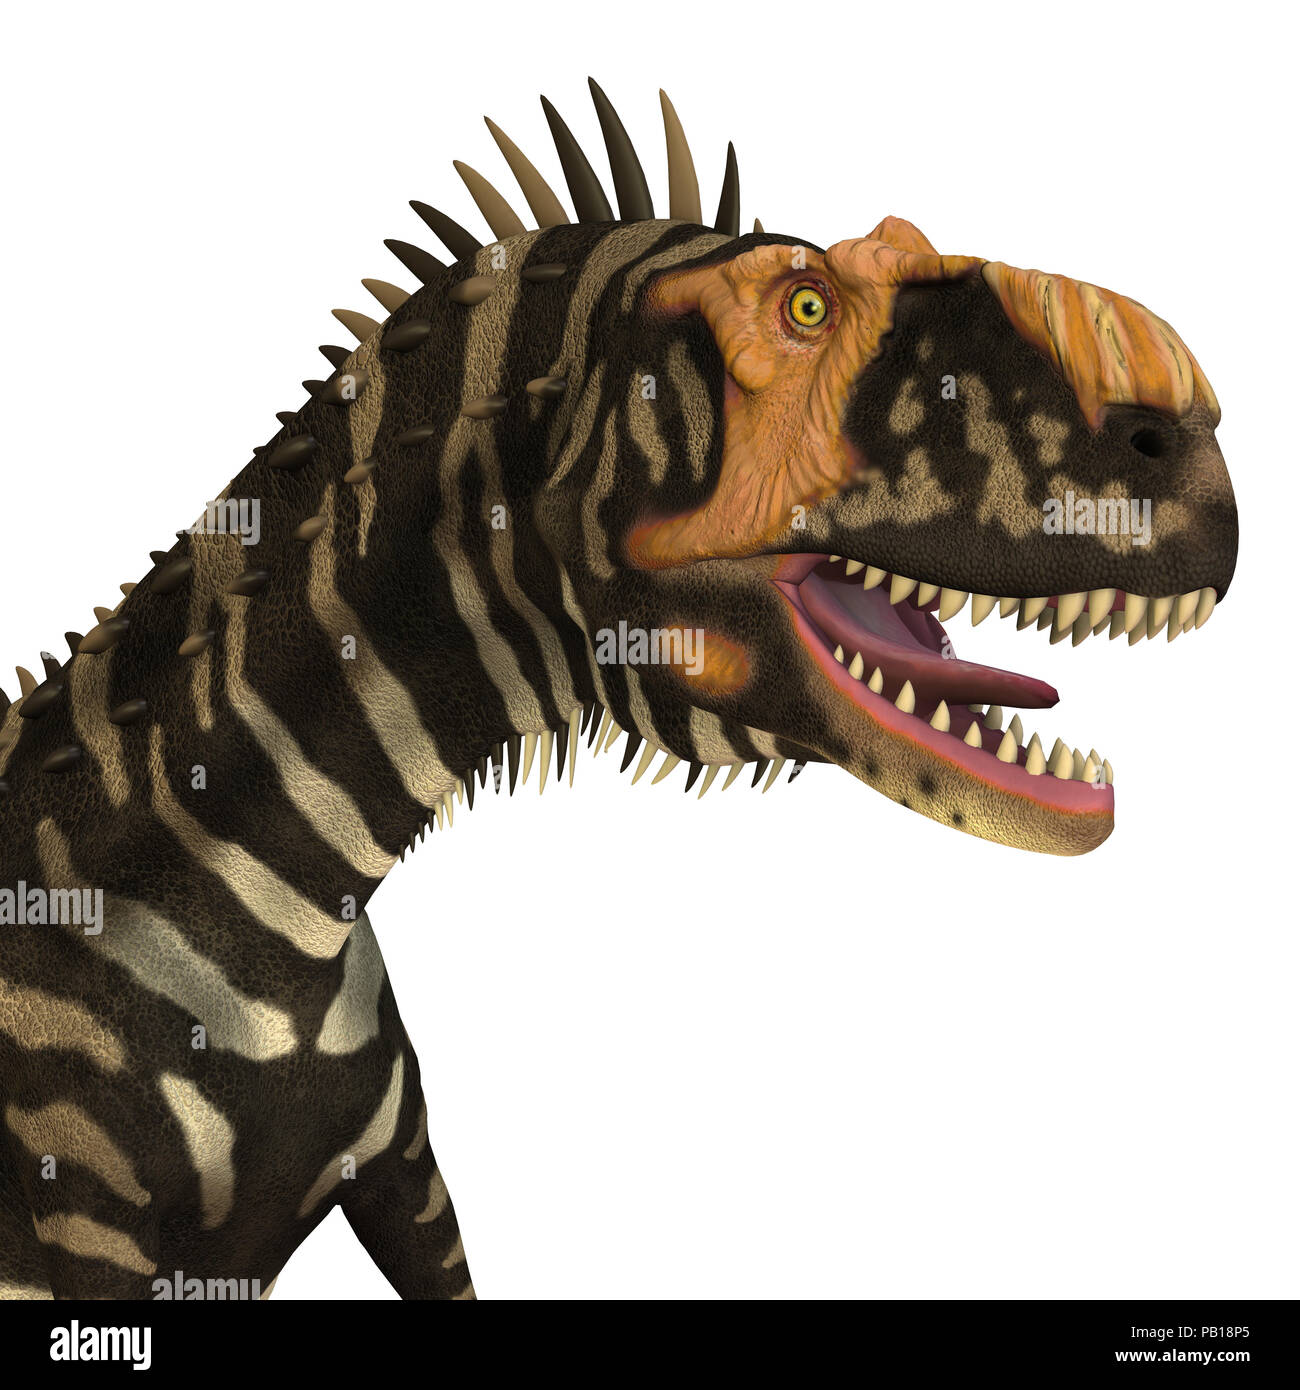 Rajasaurus Dinosaur Head - Rajasaurus was a carnivorous theropod dinosaur that lived in India during the Cretaceous Period. - Stock Image